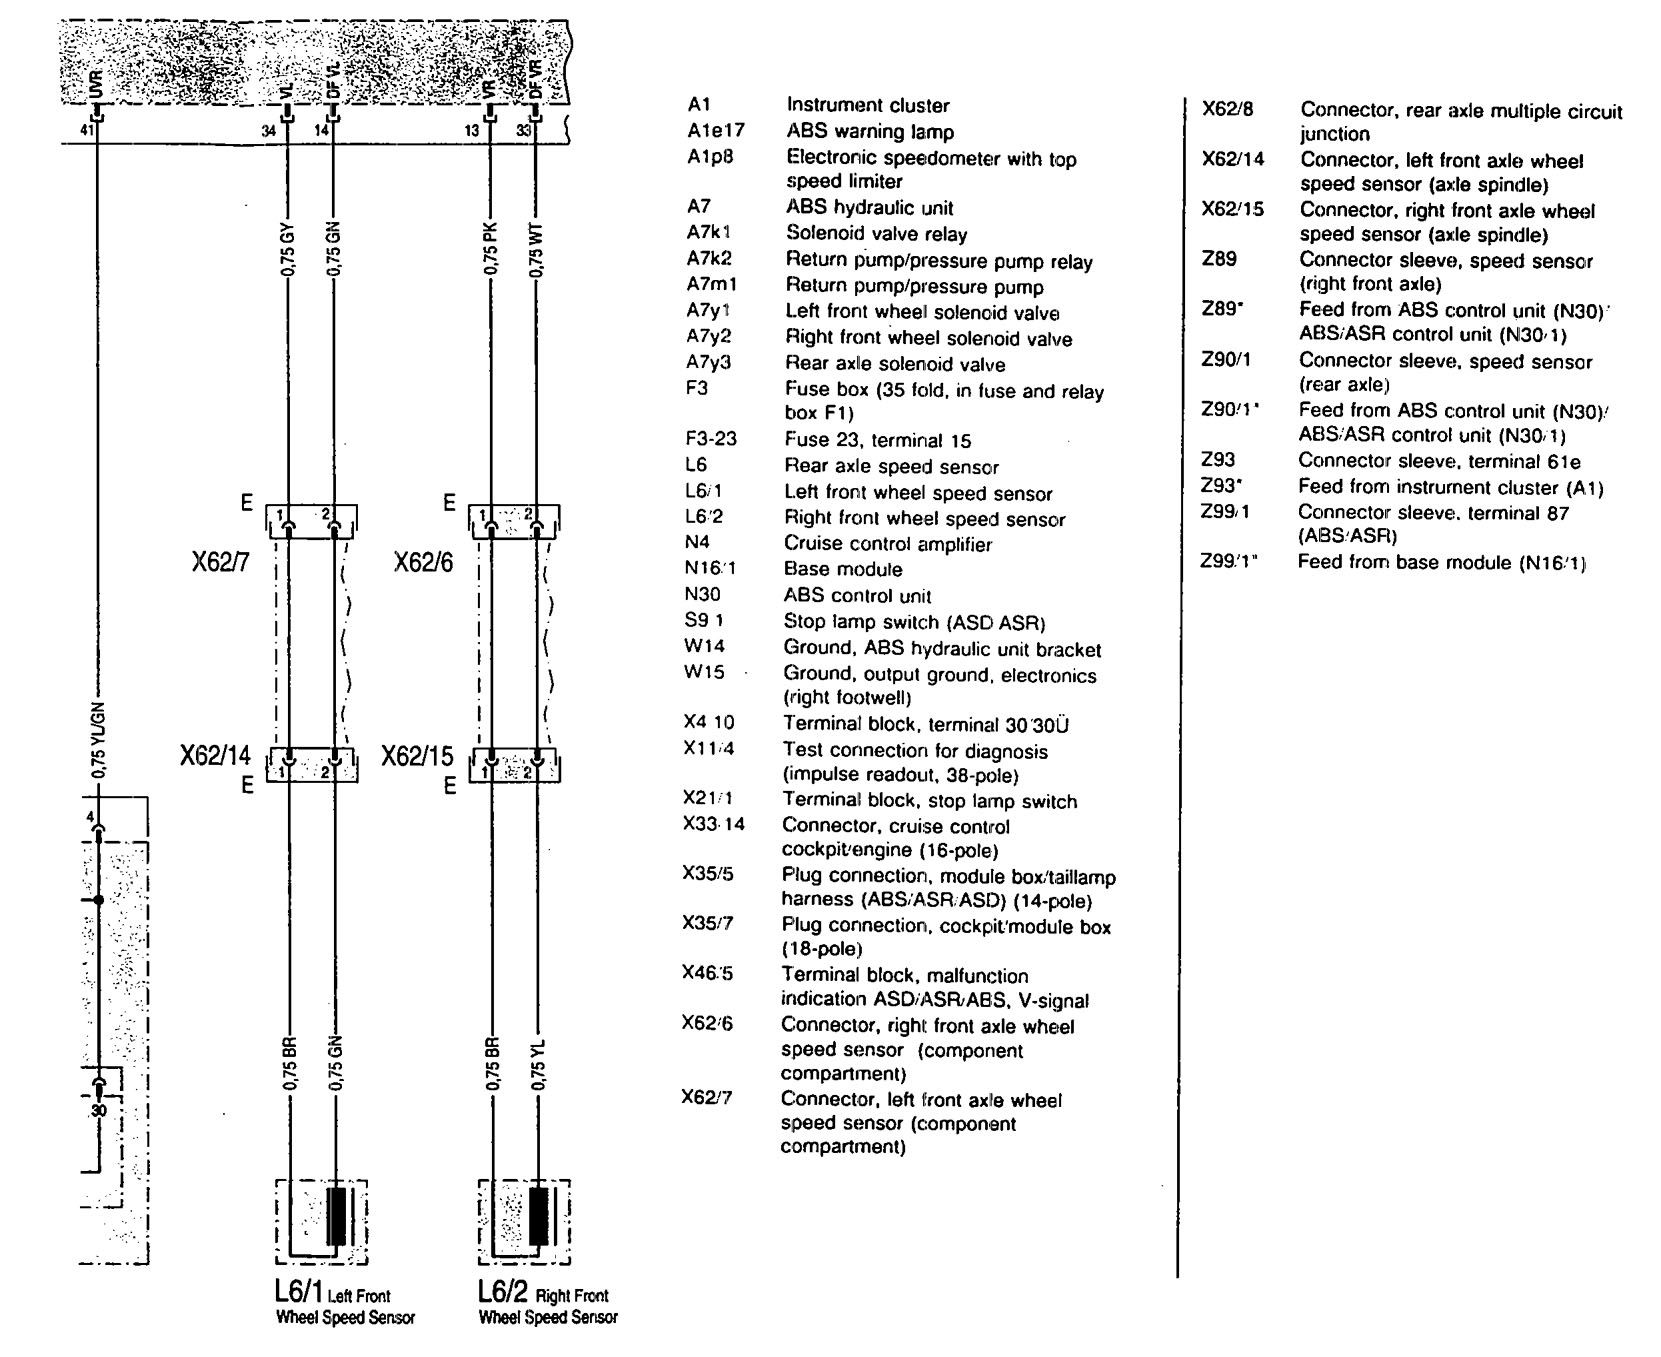 mercedes-benz 300sd  1993  - wiring diagrams